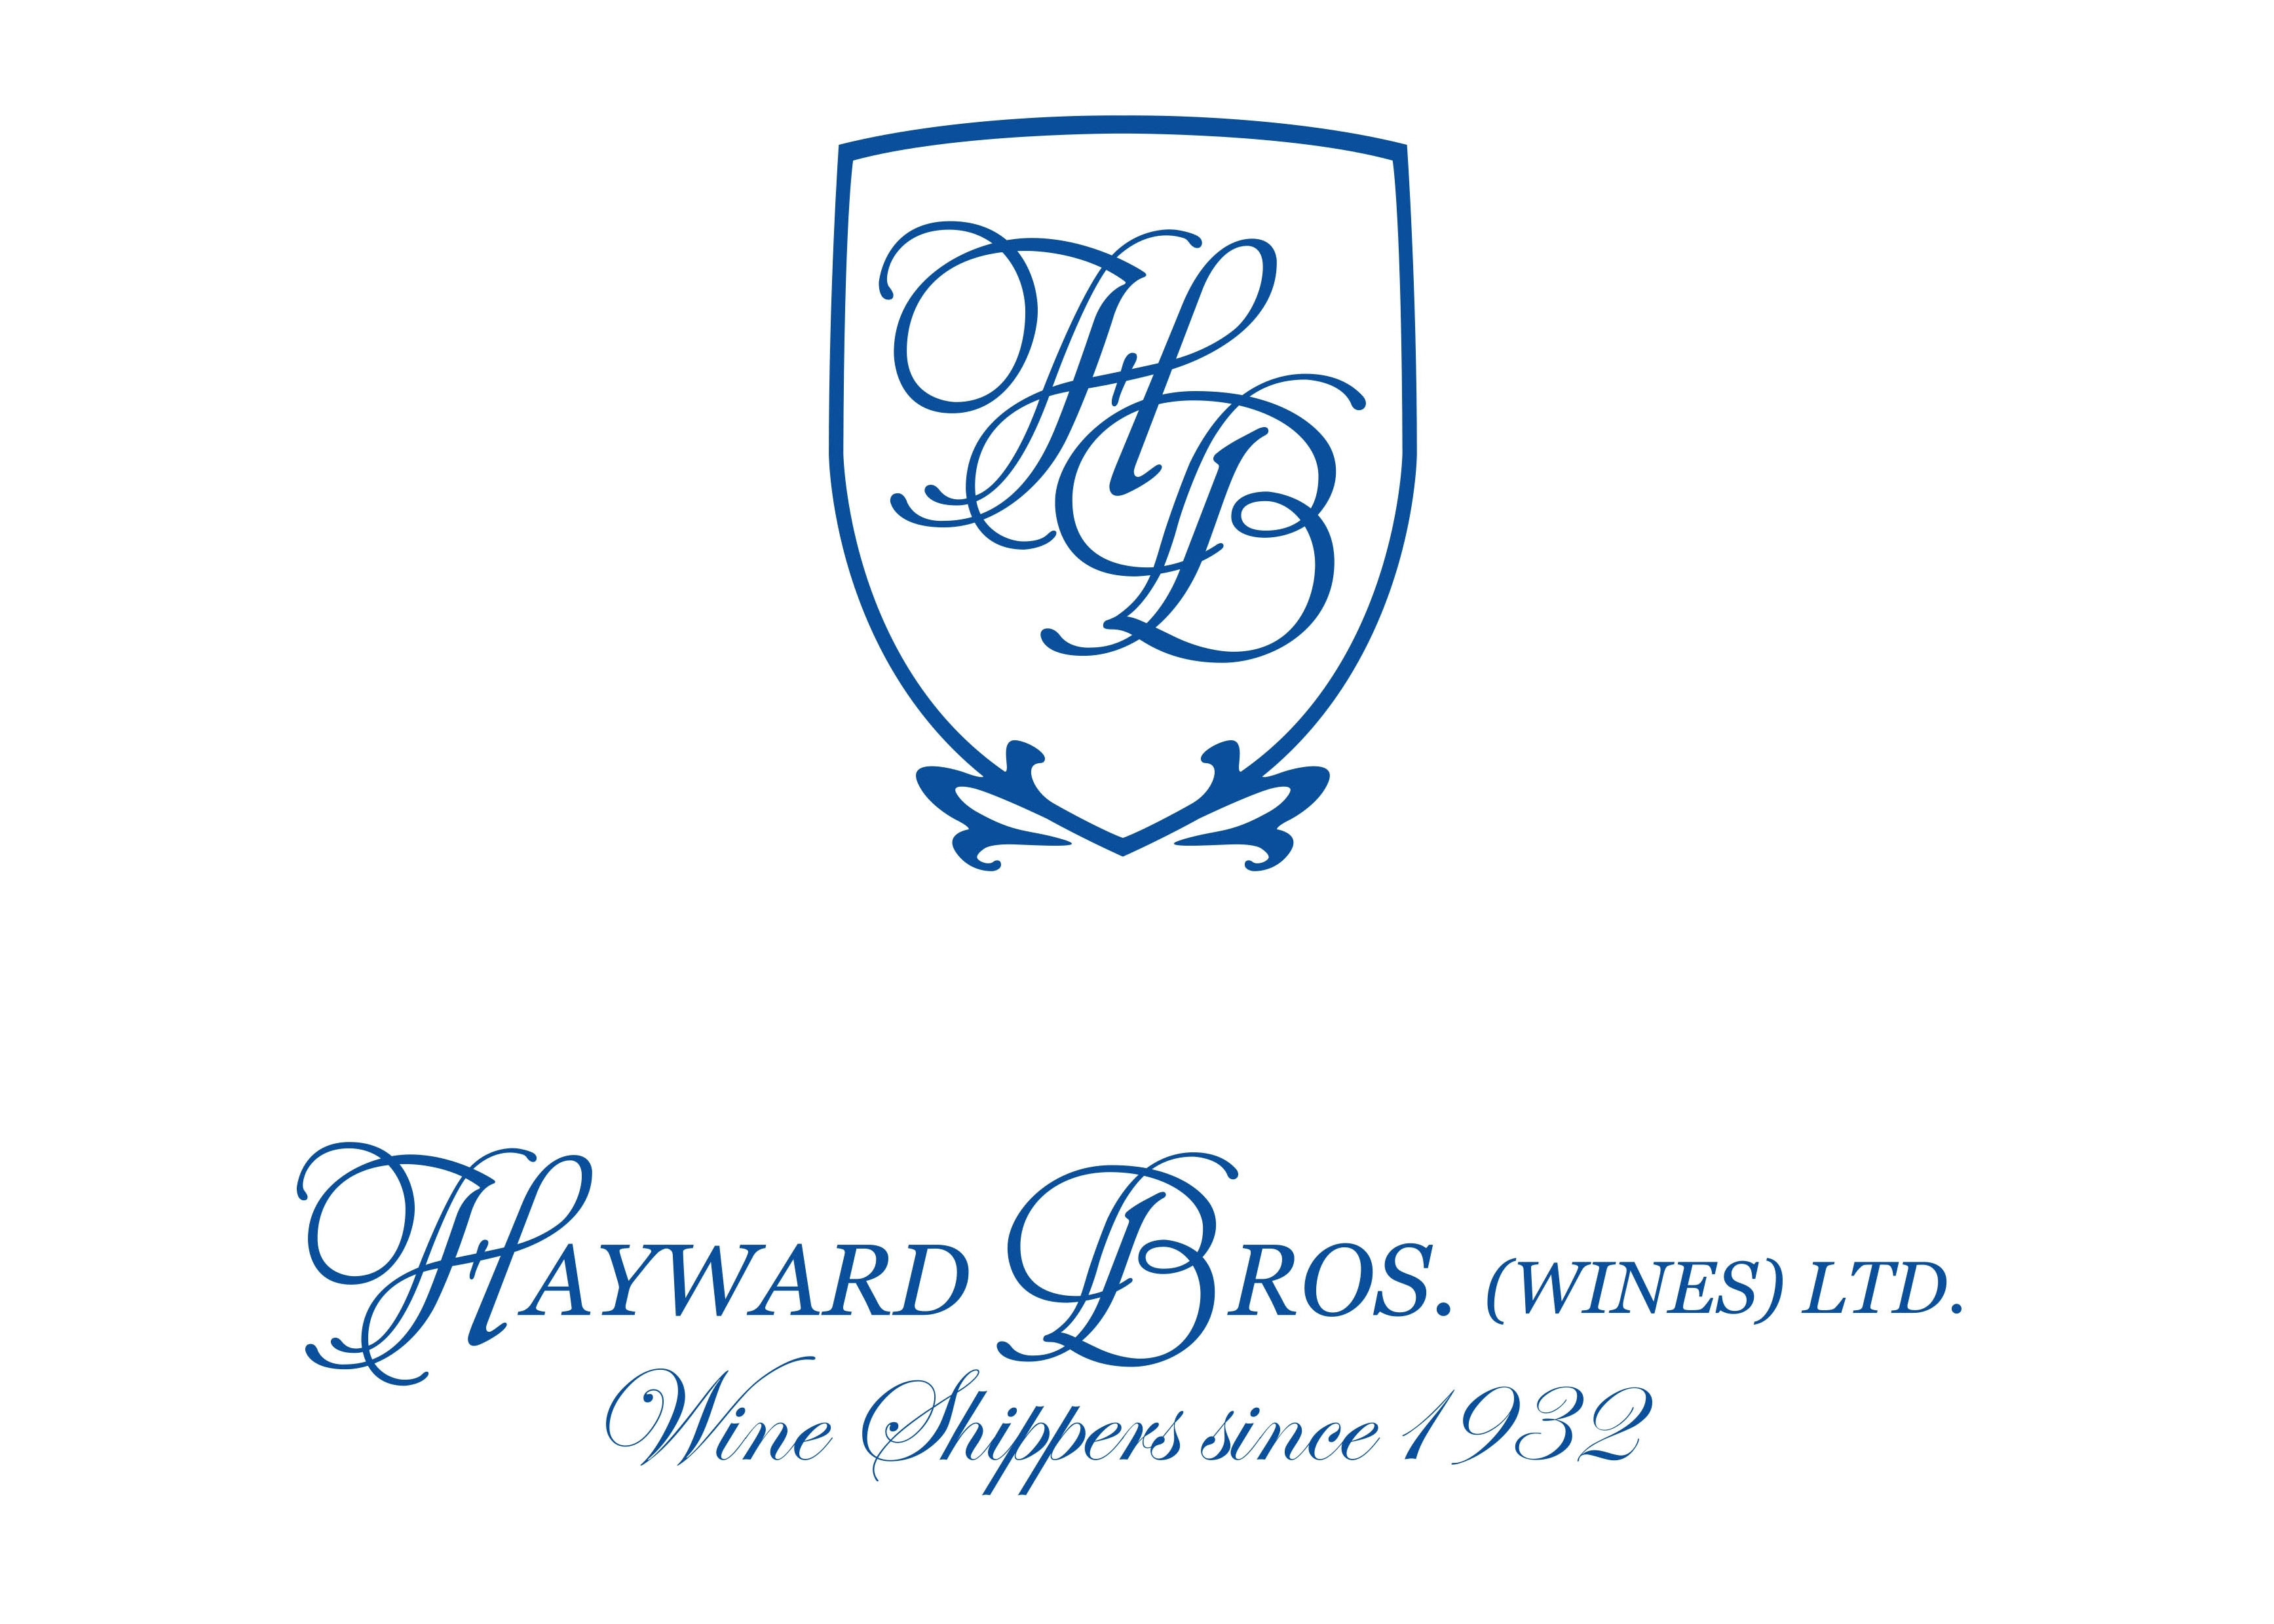 Hayward Bros (Wines) Ltd